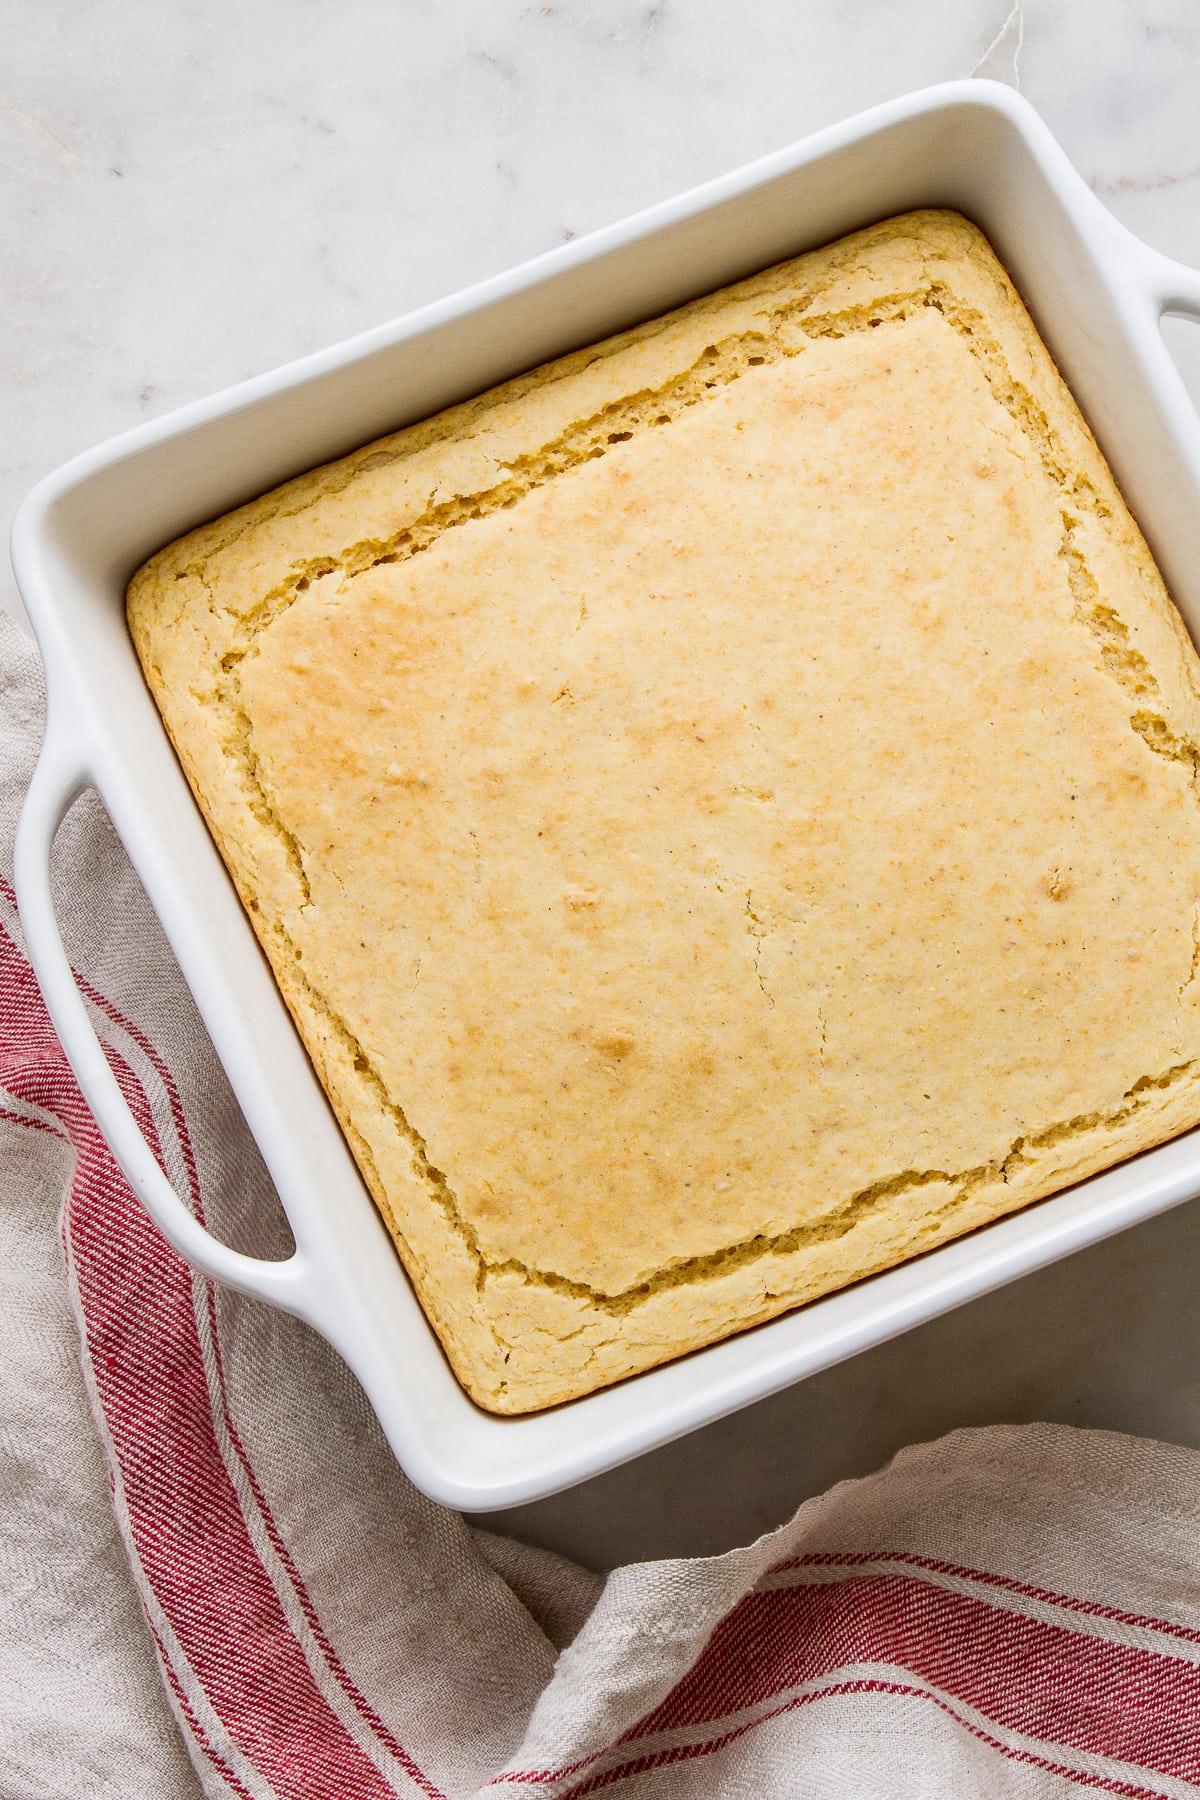 top down view of freshly baked vegan cornbread in a white baking dish.